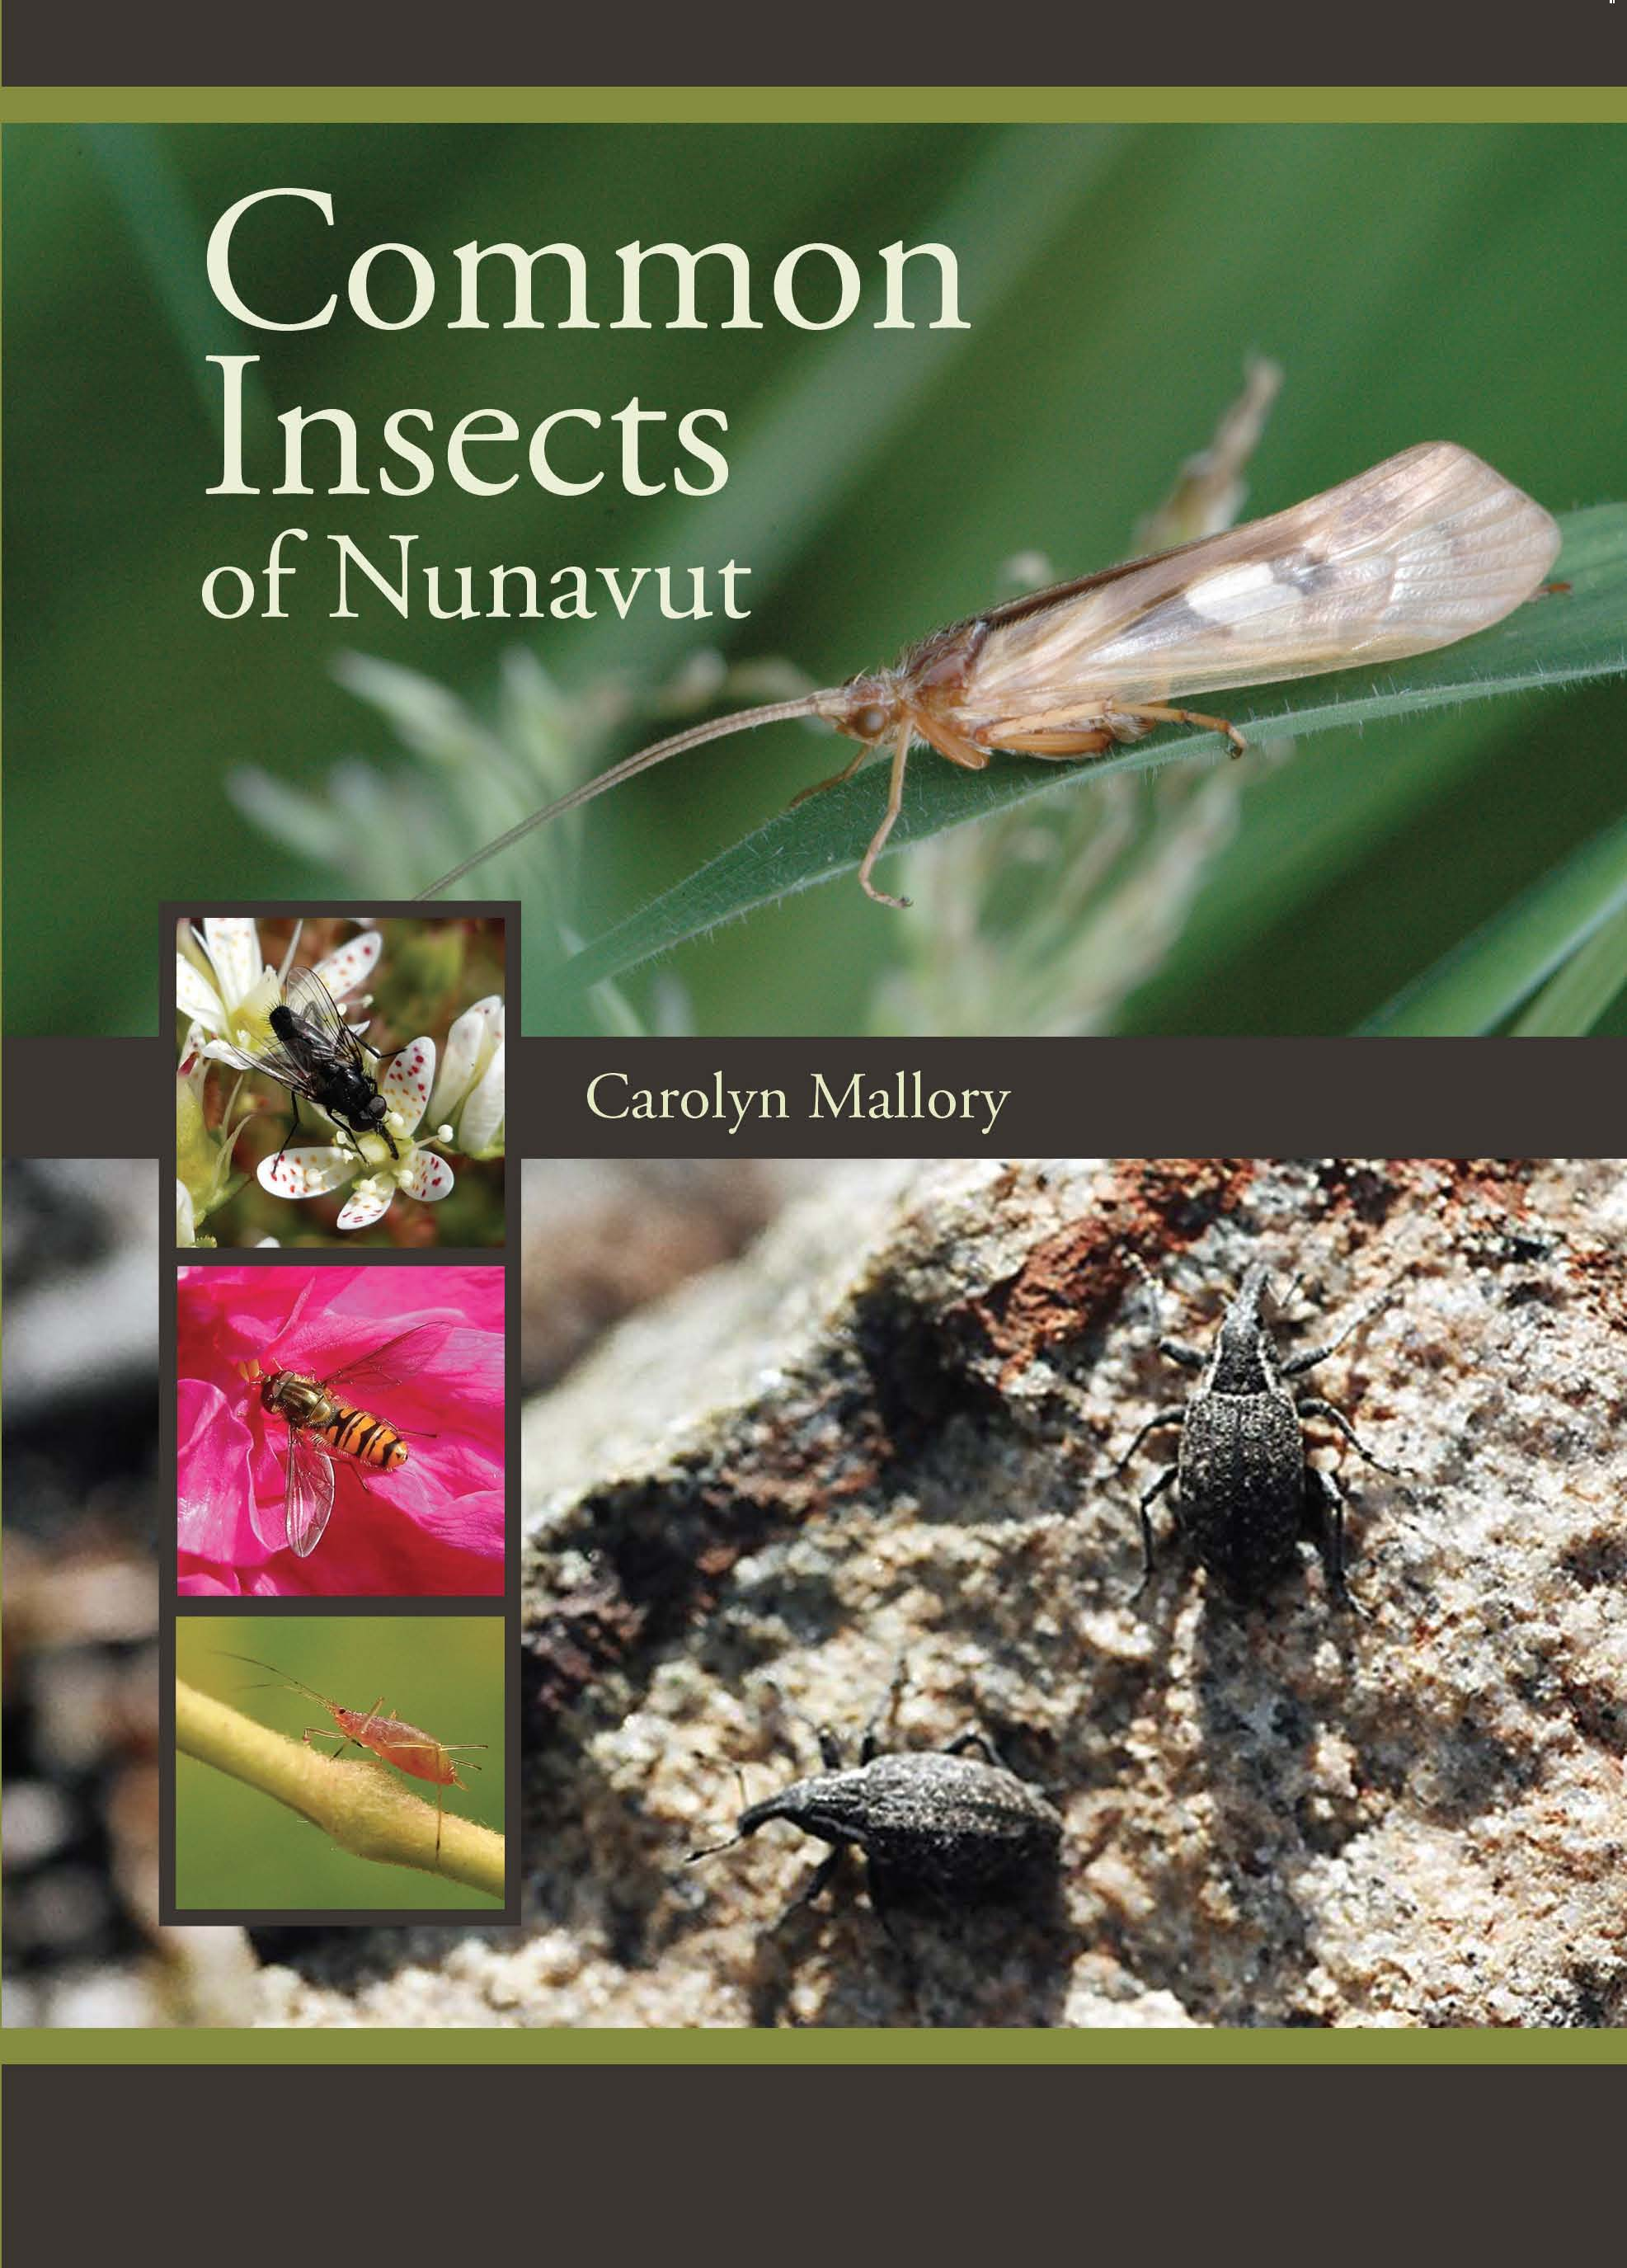 Common Insects of Nunavut